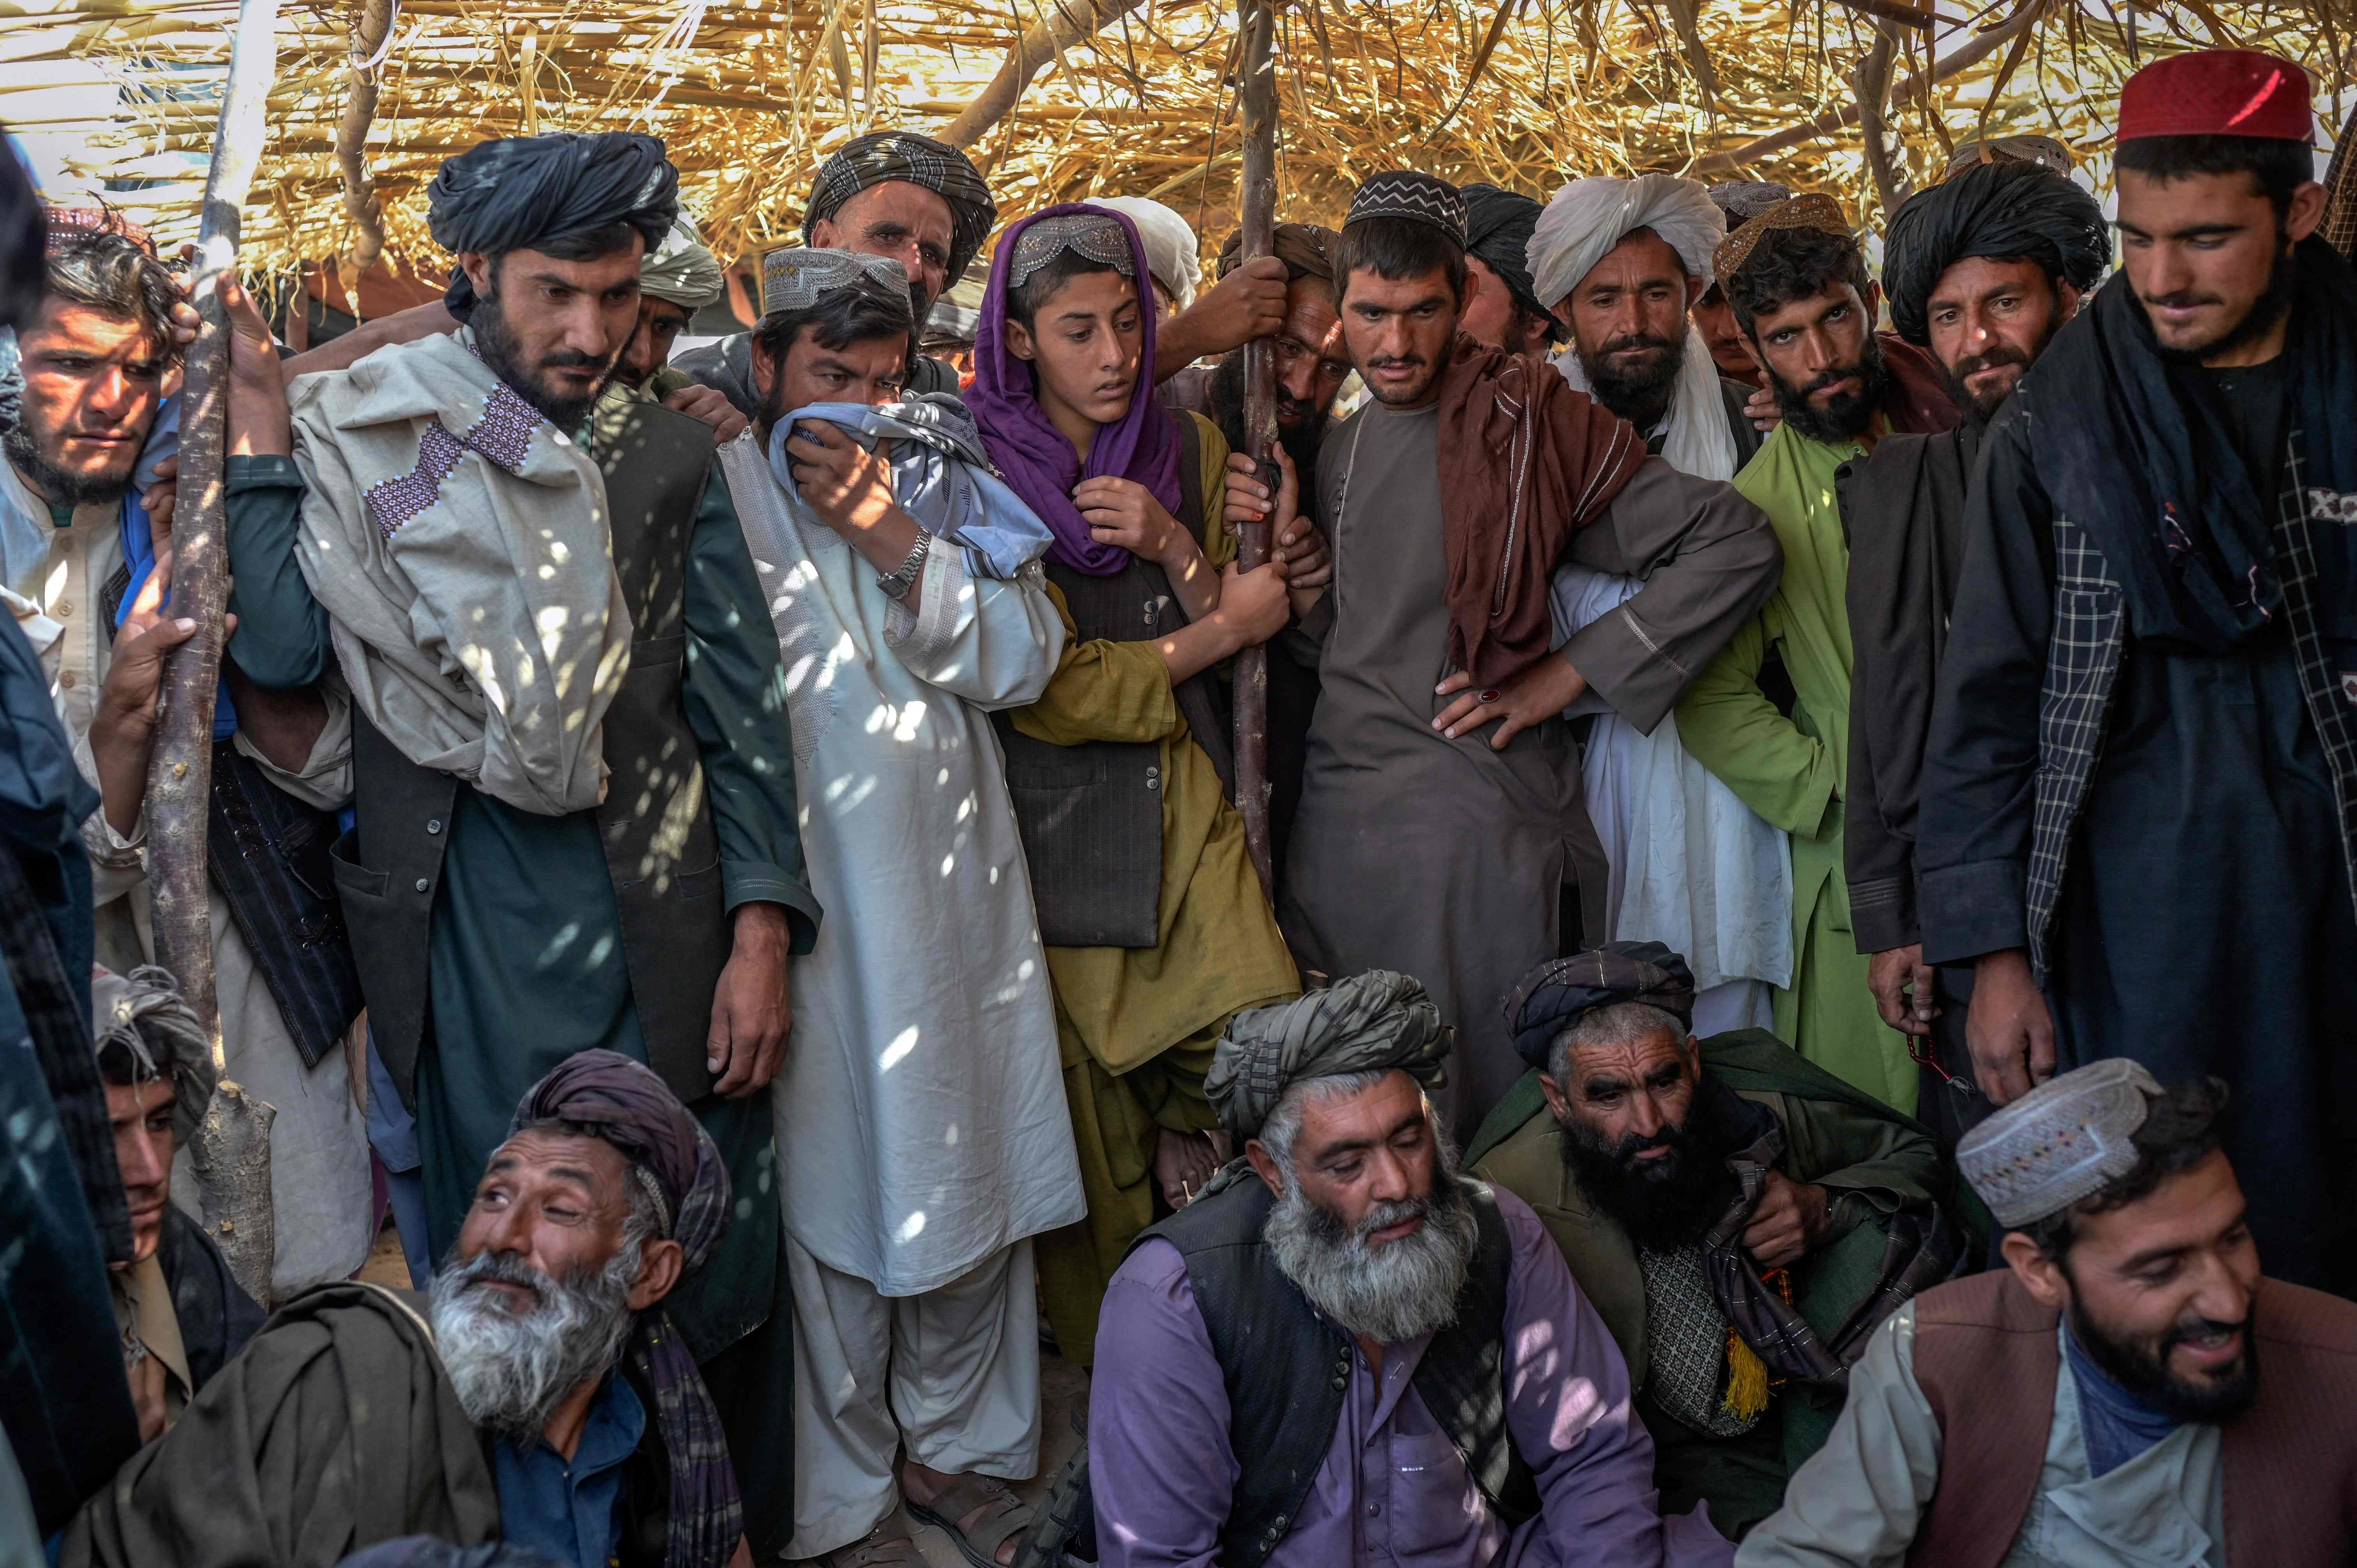 Men gather around bags containing heroin and hashish as they negotiate and check quality at a drug market on the outskirts of Kandahar, Afghanistan on September 24, 2021. — AFP